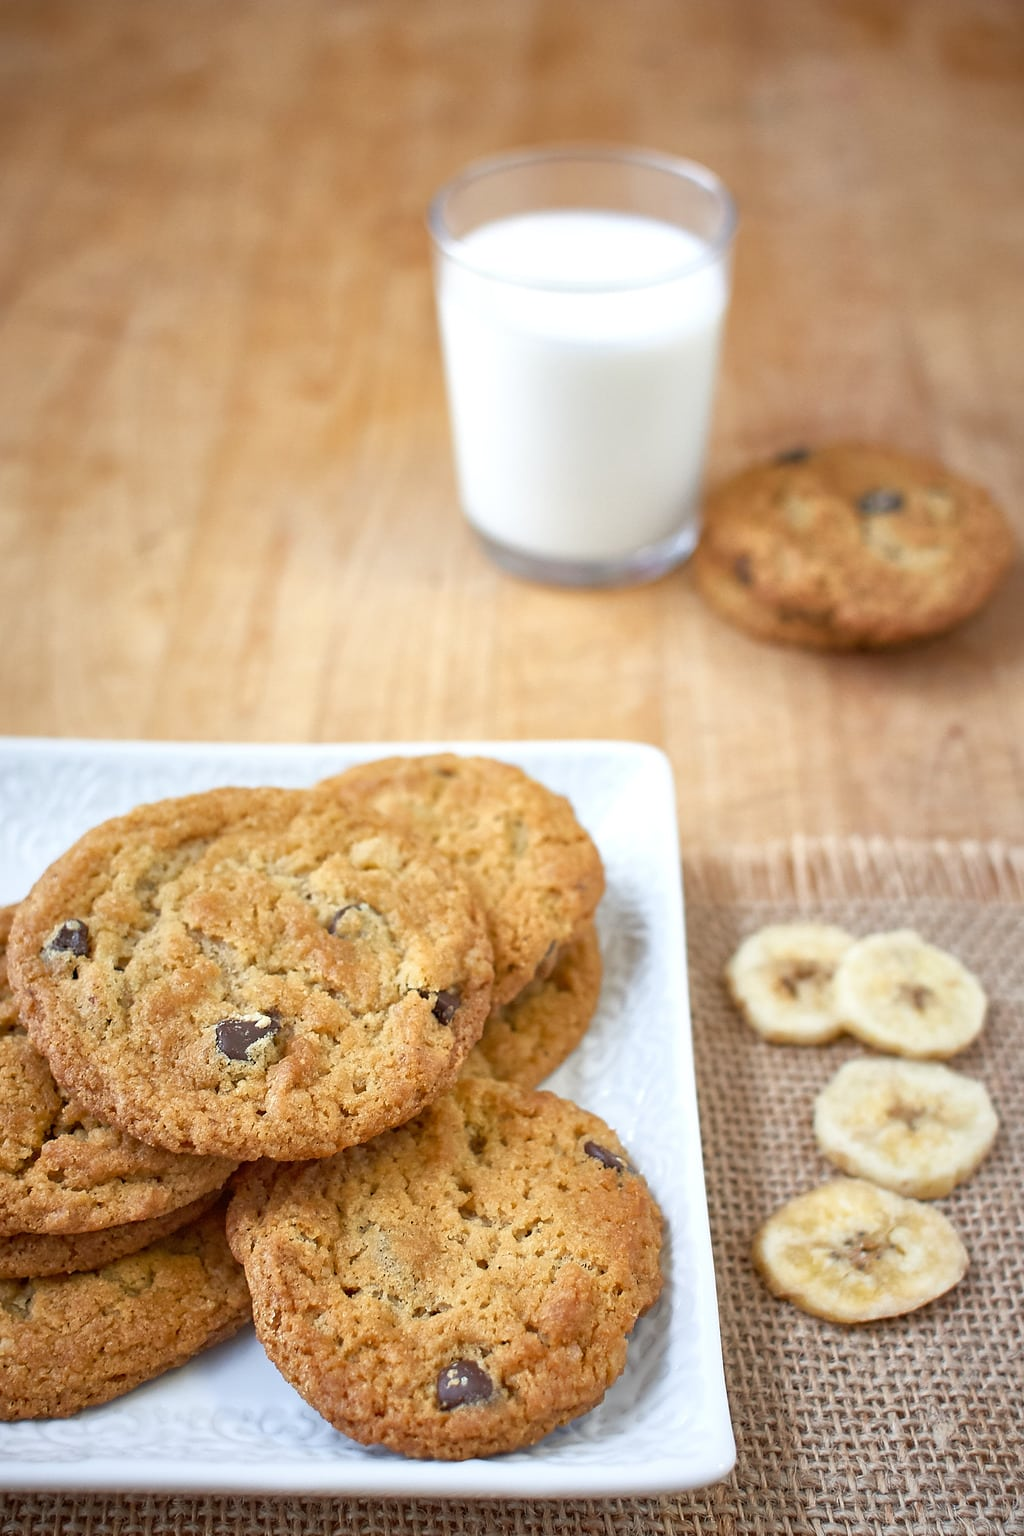 Chocolate chip cookies on plate with banana chips and milk.